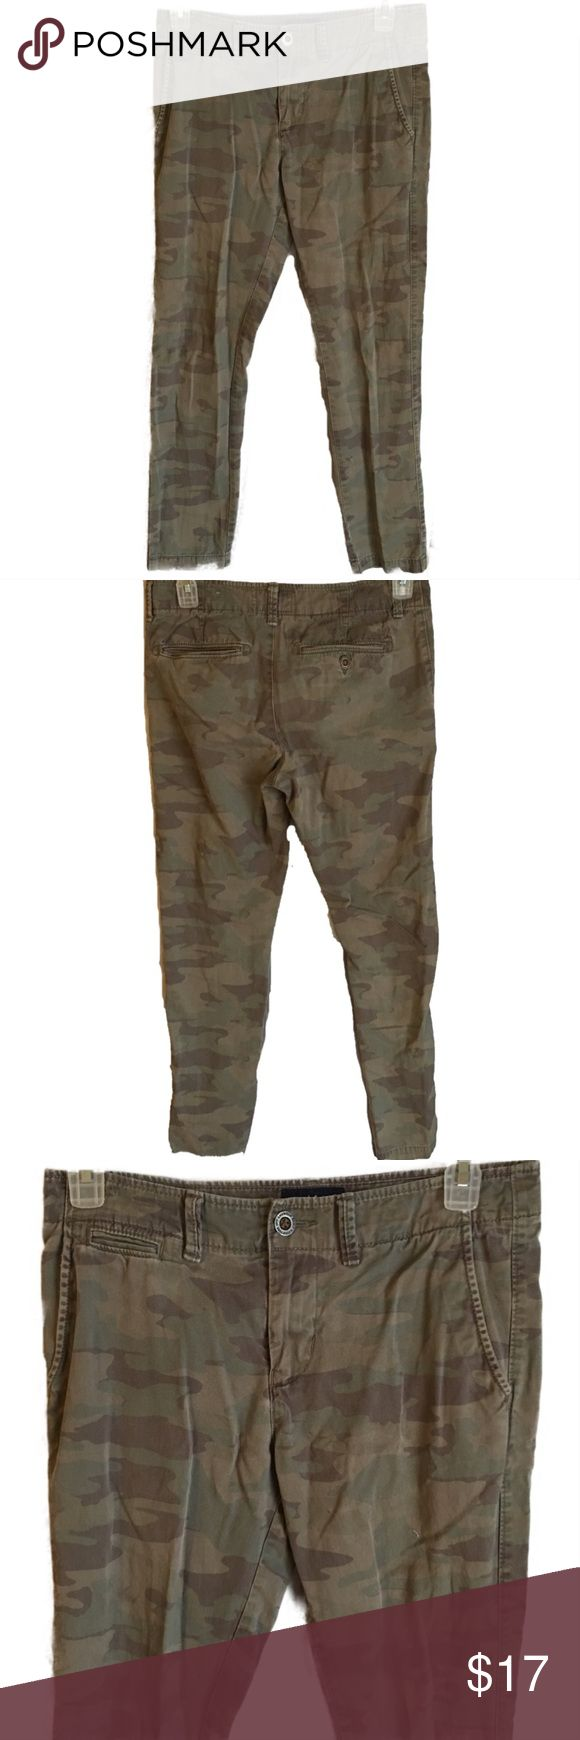 """American Eagle Mens Slim Straight Camo Pants 30x34 American Eagle men's slim straight camo pants size 30x34  Measurements- Waist: 33"""" Rise: 10"""" Inseam: 31""""    Customer service is my #1 priority! I strive to not only meet, but to exceed the standard. If for any reason you are unhappy with your order, I will make it right!      Thank you for supporting small business! American Eagle Outfitters Pants"""